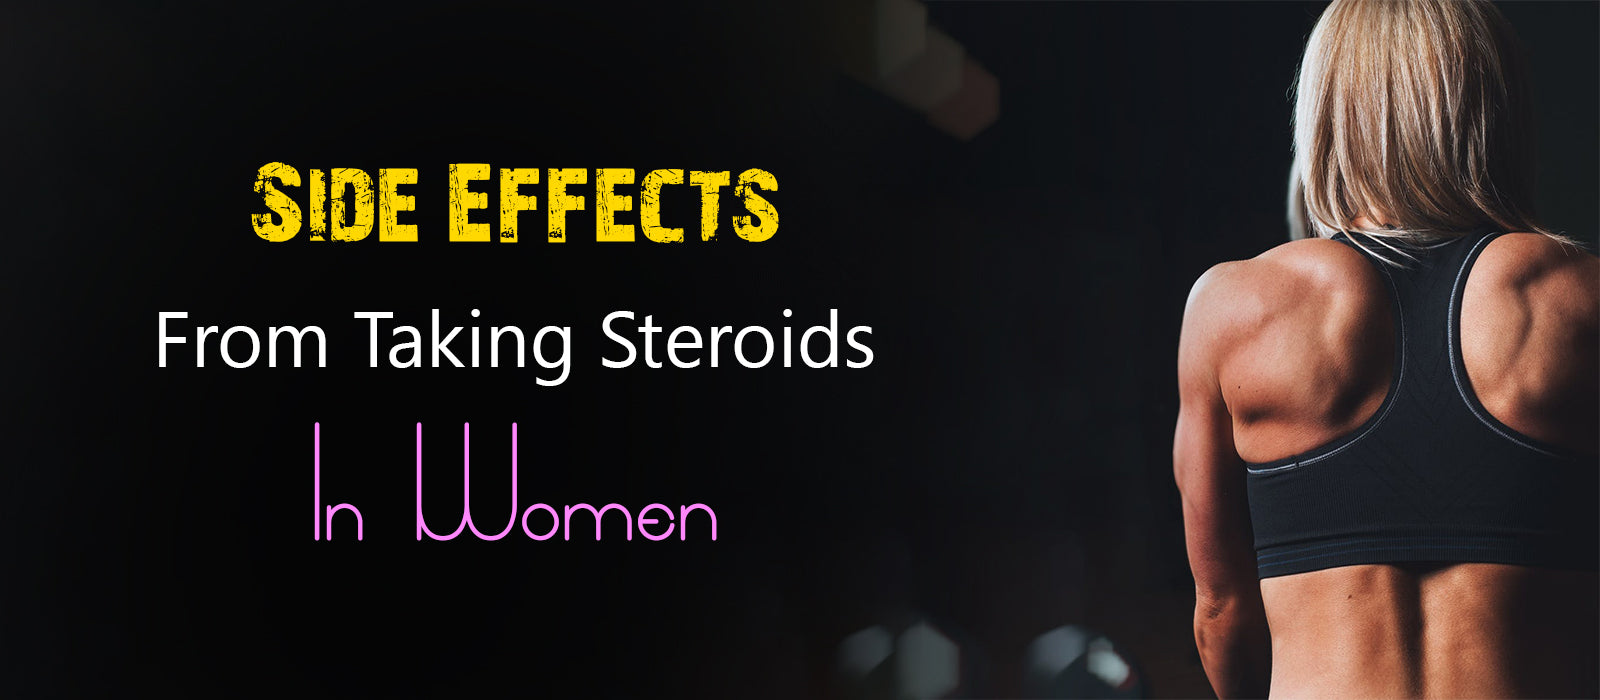 Side Effects From Taking Steroids In Women